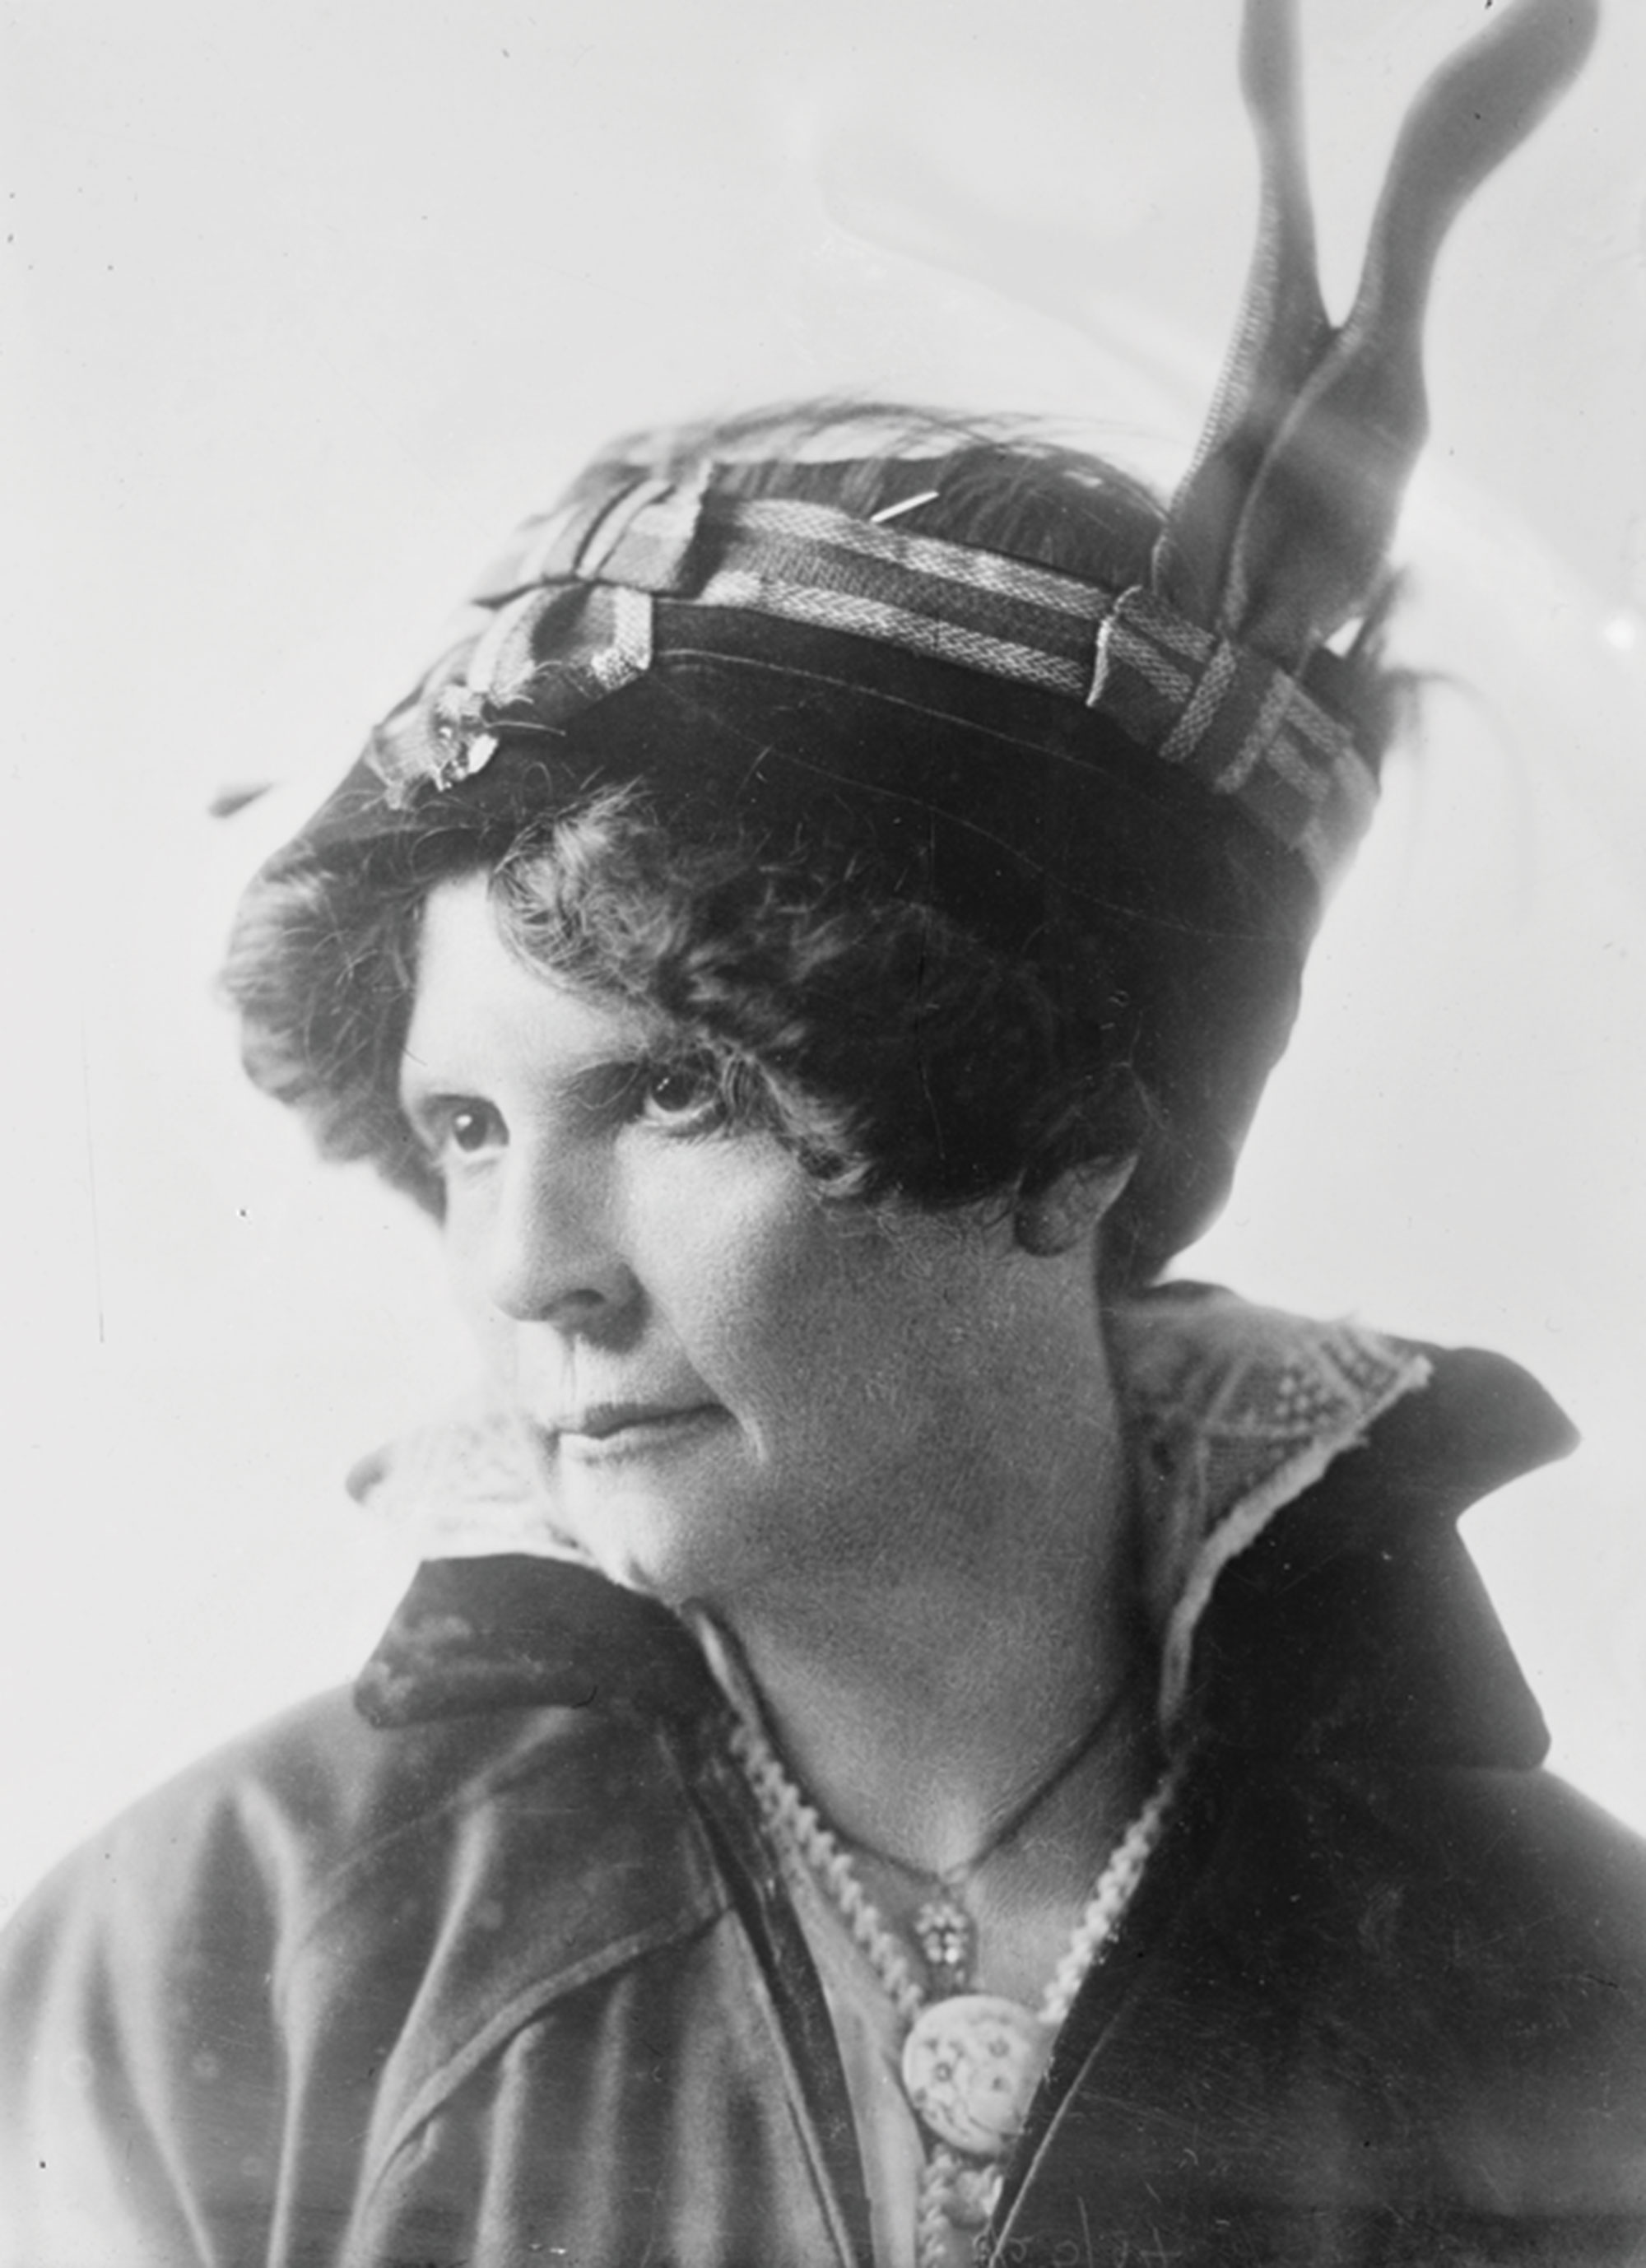 Frances W. Munds; Photo courtesy Library of Congress